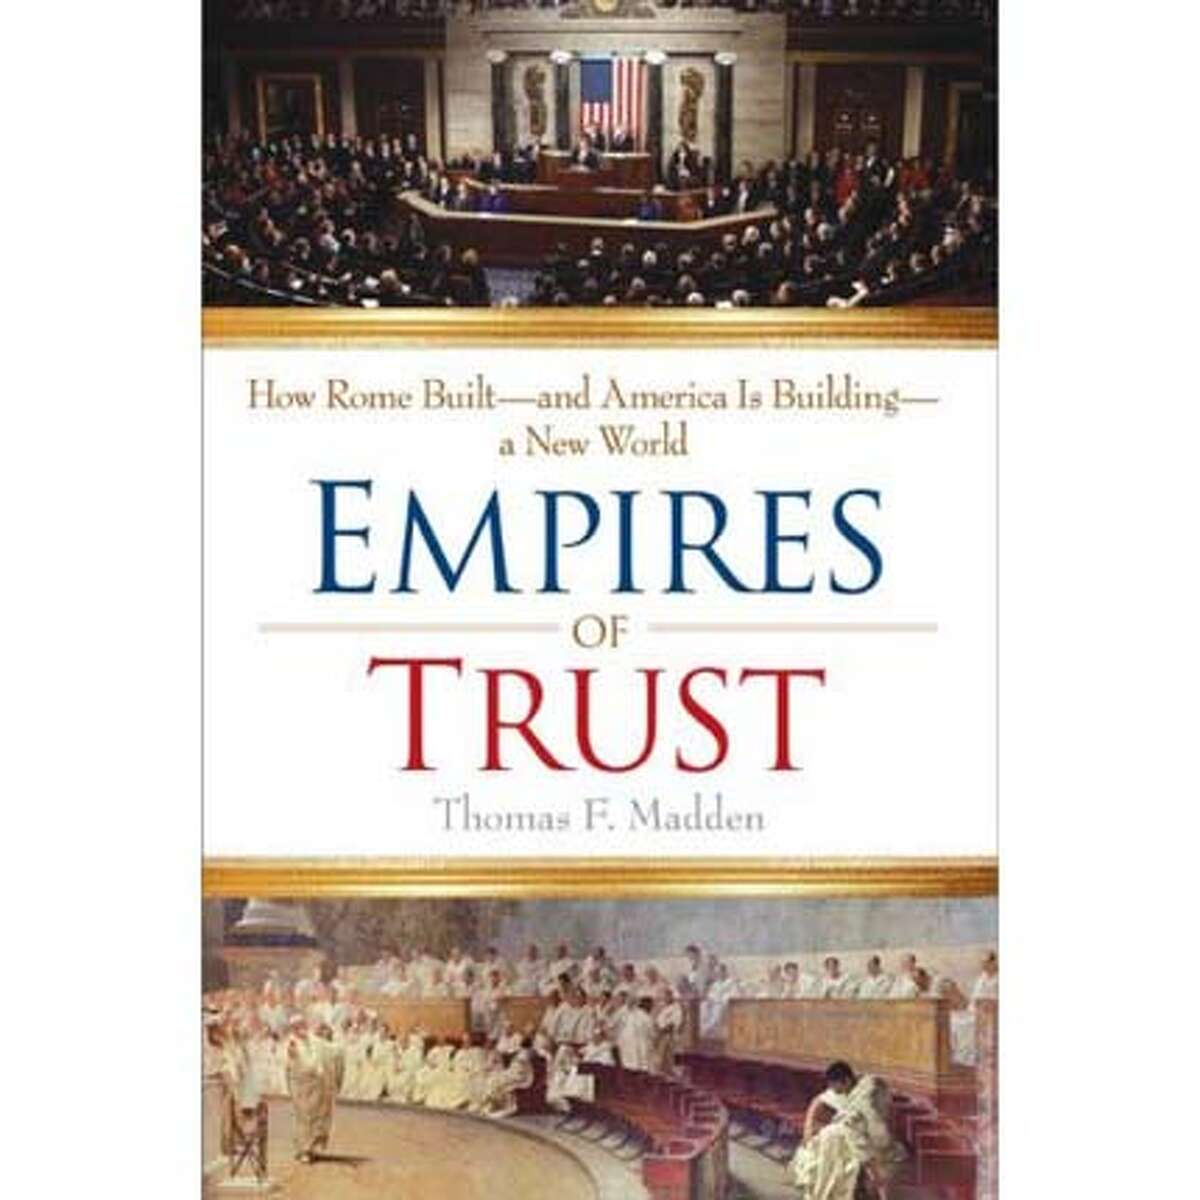 Empires of Trust: How Rome Built - and America Is Building - a New World By Thomas F. Madden